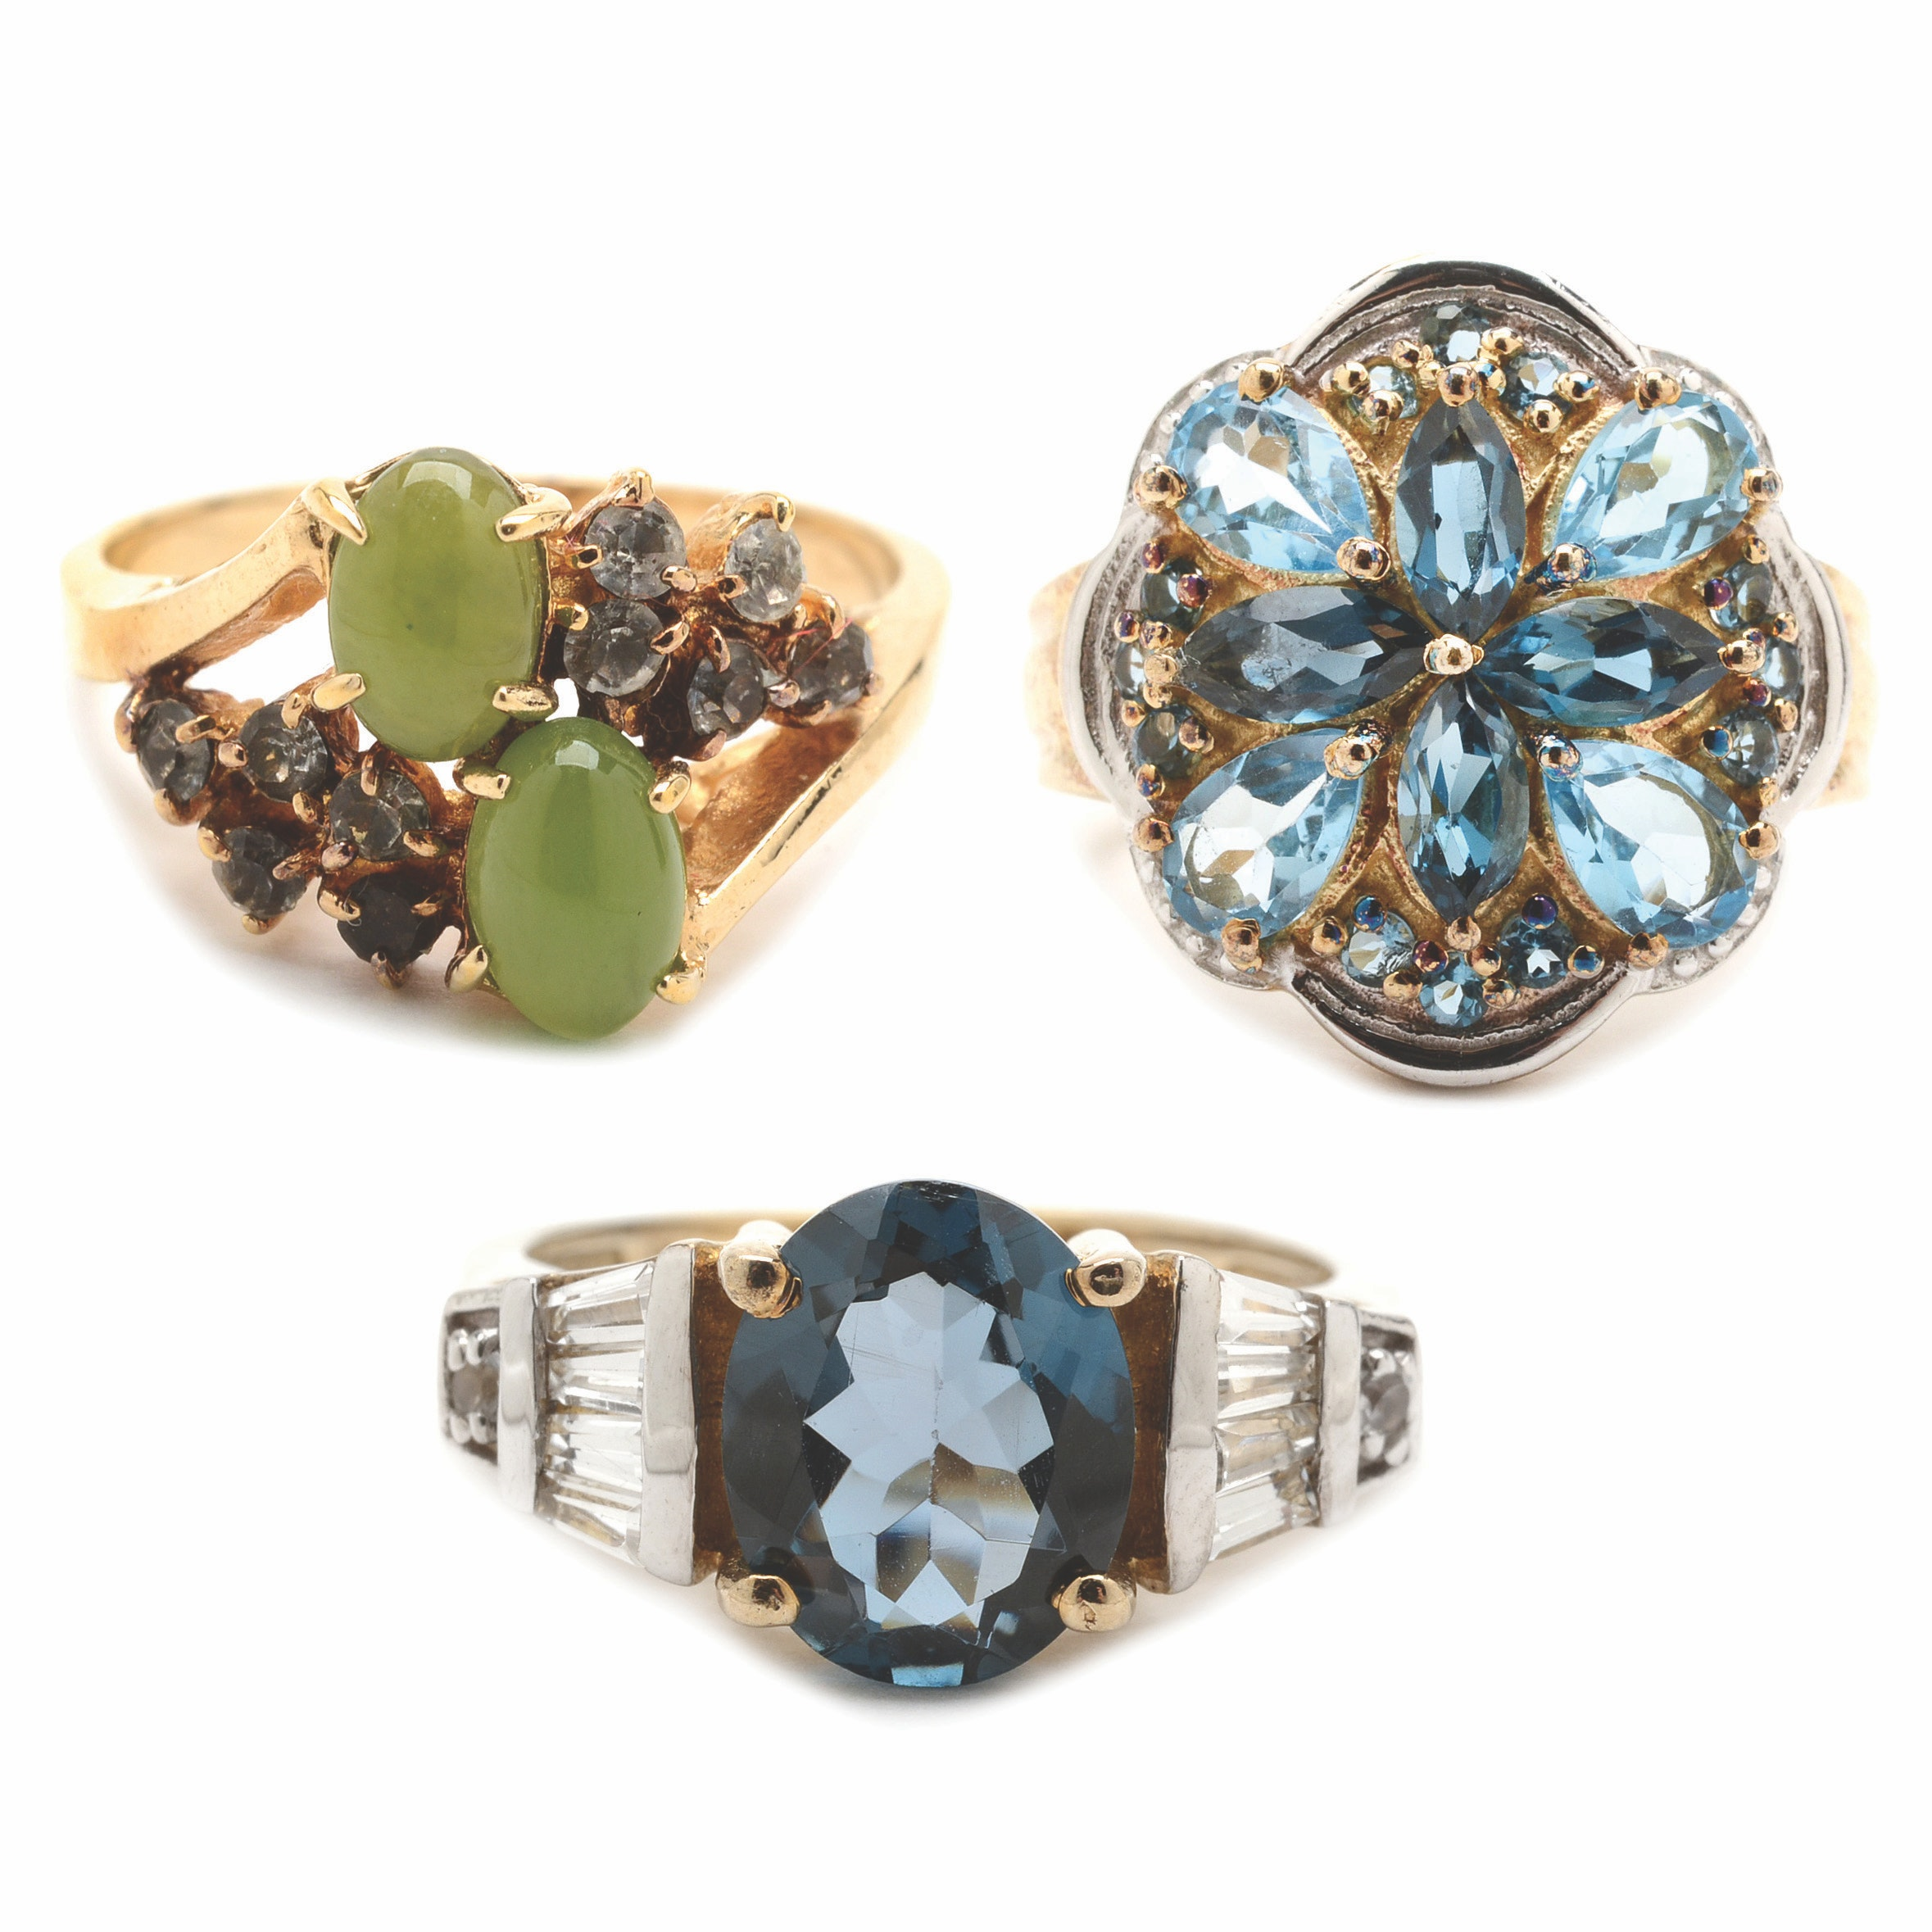 Vermeil Sterling Silver Rings and More